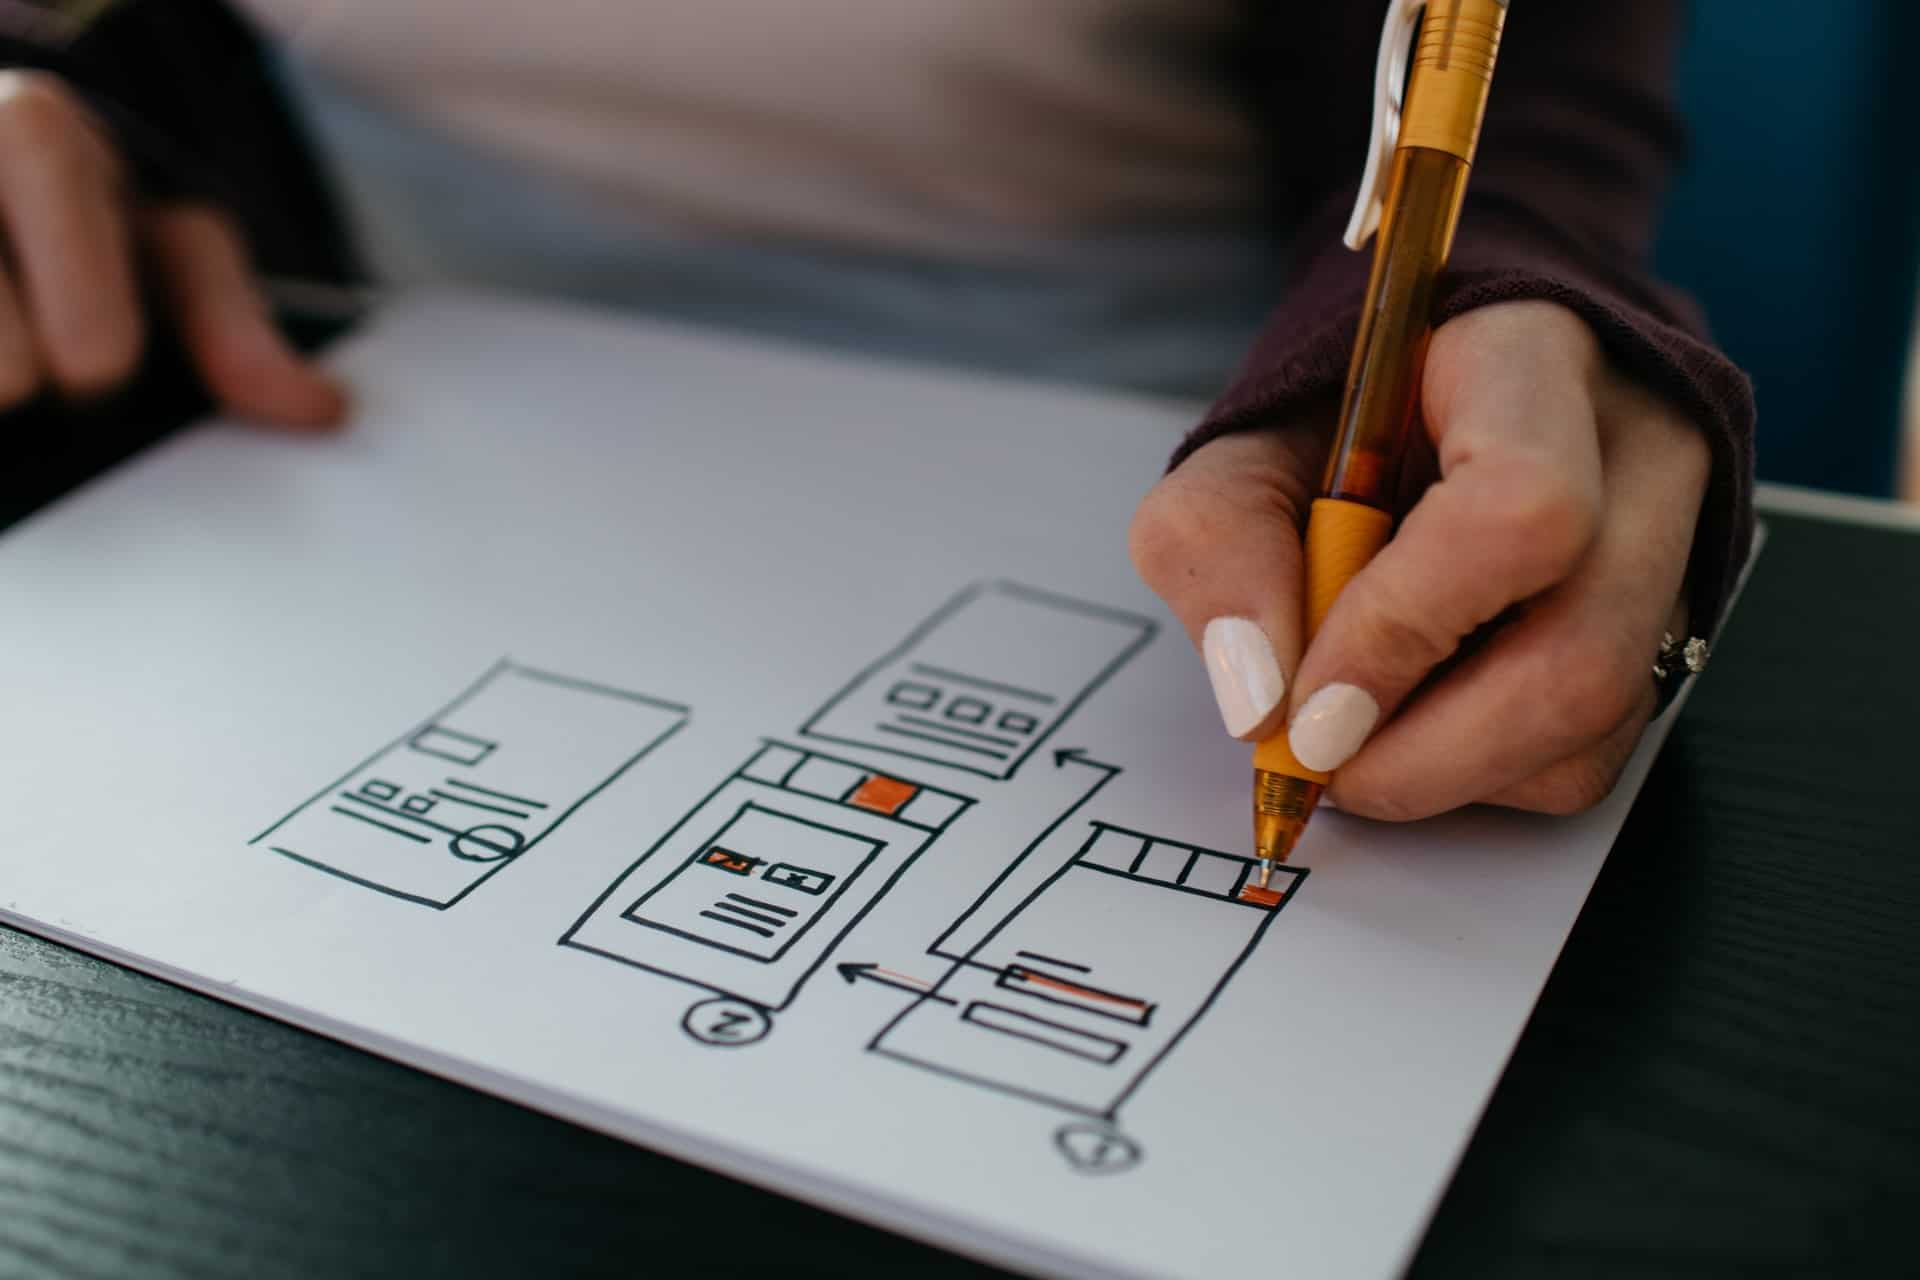 UX architect can help get the digital presence of a business off the ground brought to you by WANDR Studio, leading Product Design and UX Design Firm in LA and SF